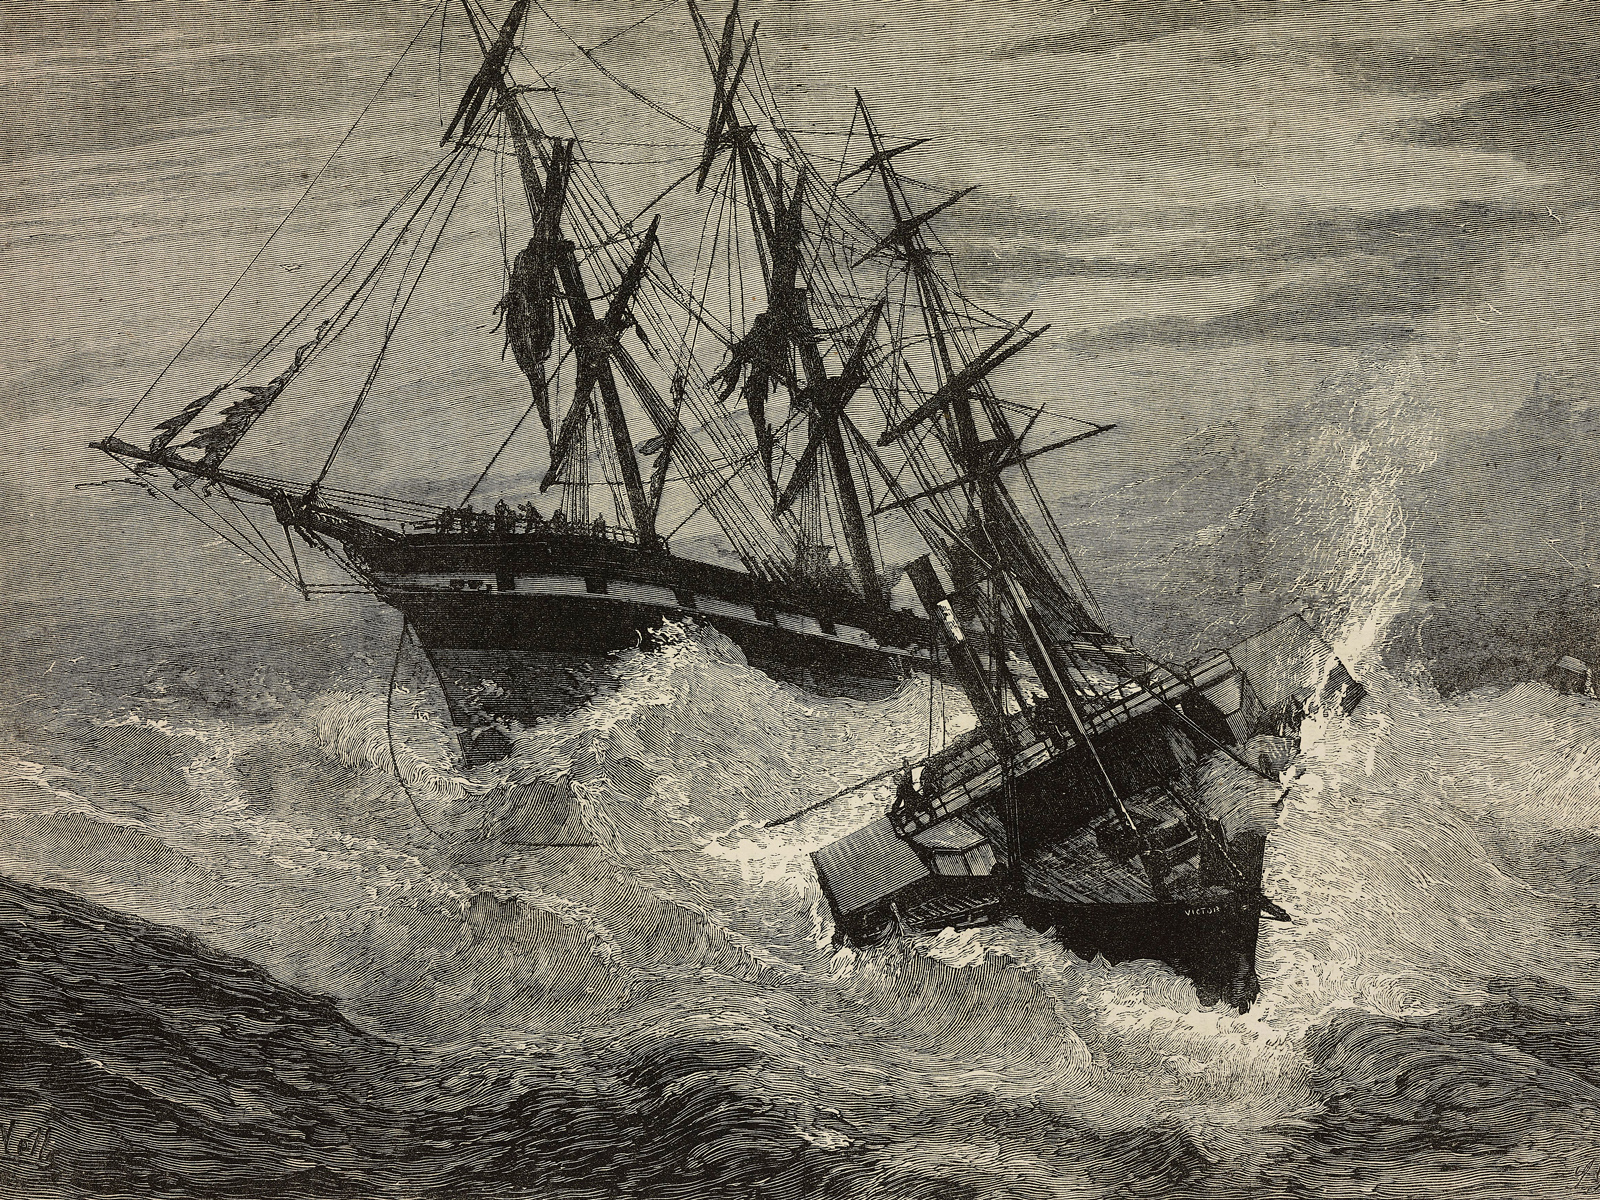 christies-shipwreck-wine-FT-BLOG0519.jpg